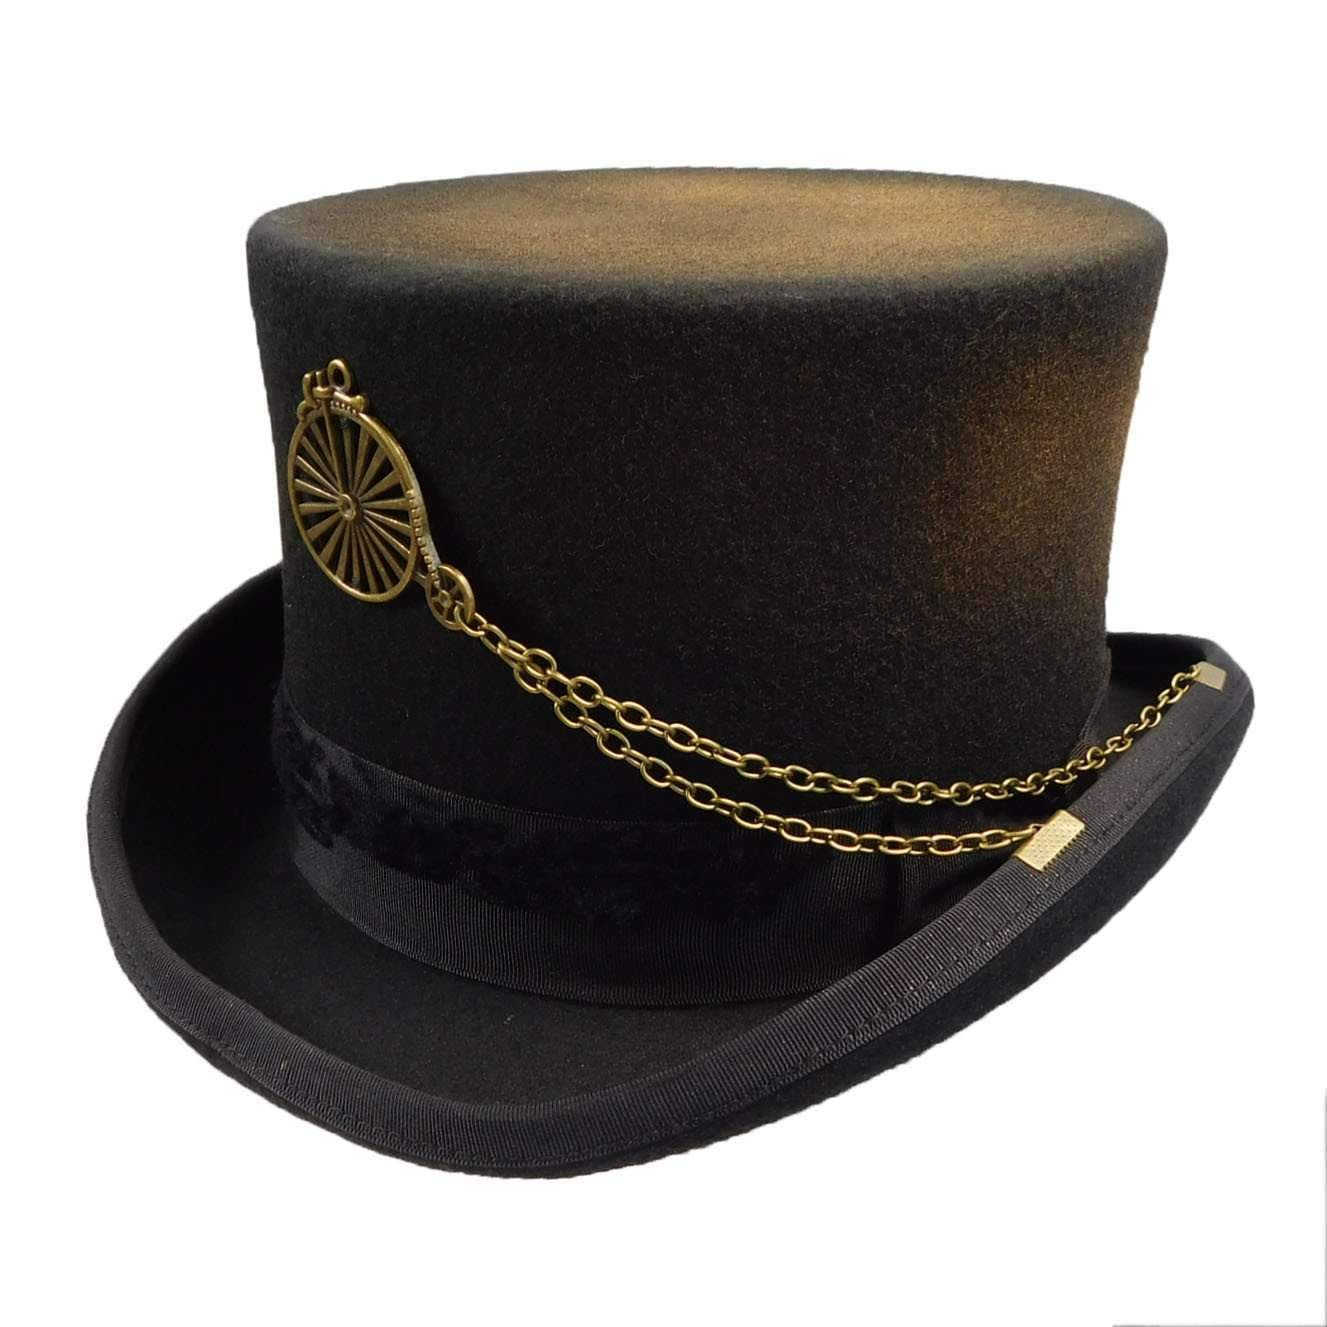 0712dd06c874 Panama Straw Top Hat - Black in 2019 | Hats! | Top hats for women ...